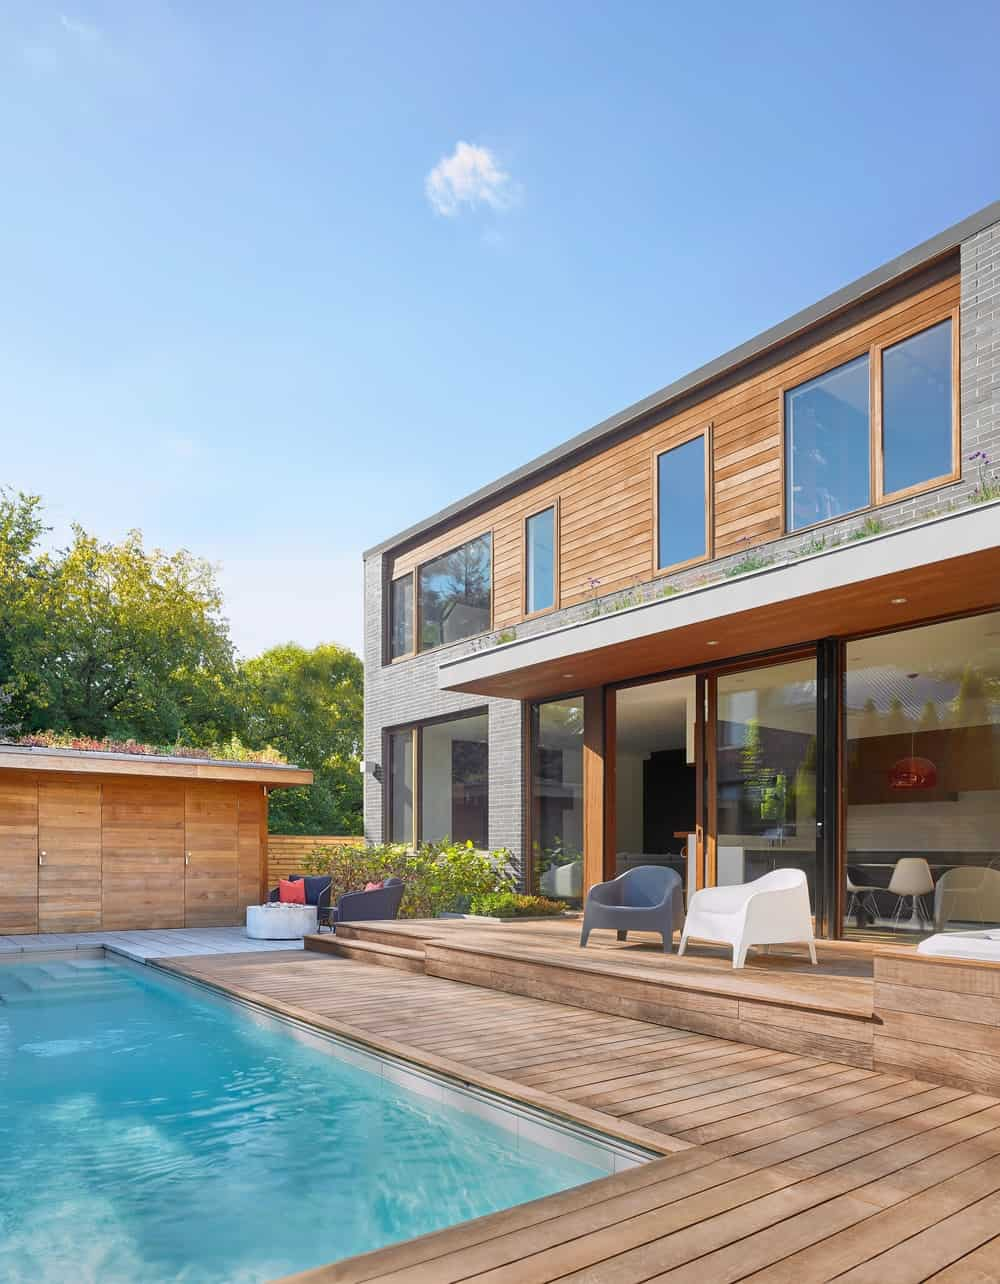 This is a view of the back of the house showcasing the wooden deck flooring of the poolside area that match with the exteriors of the house with large windows.